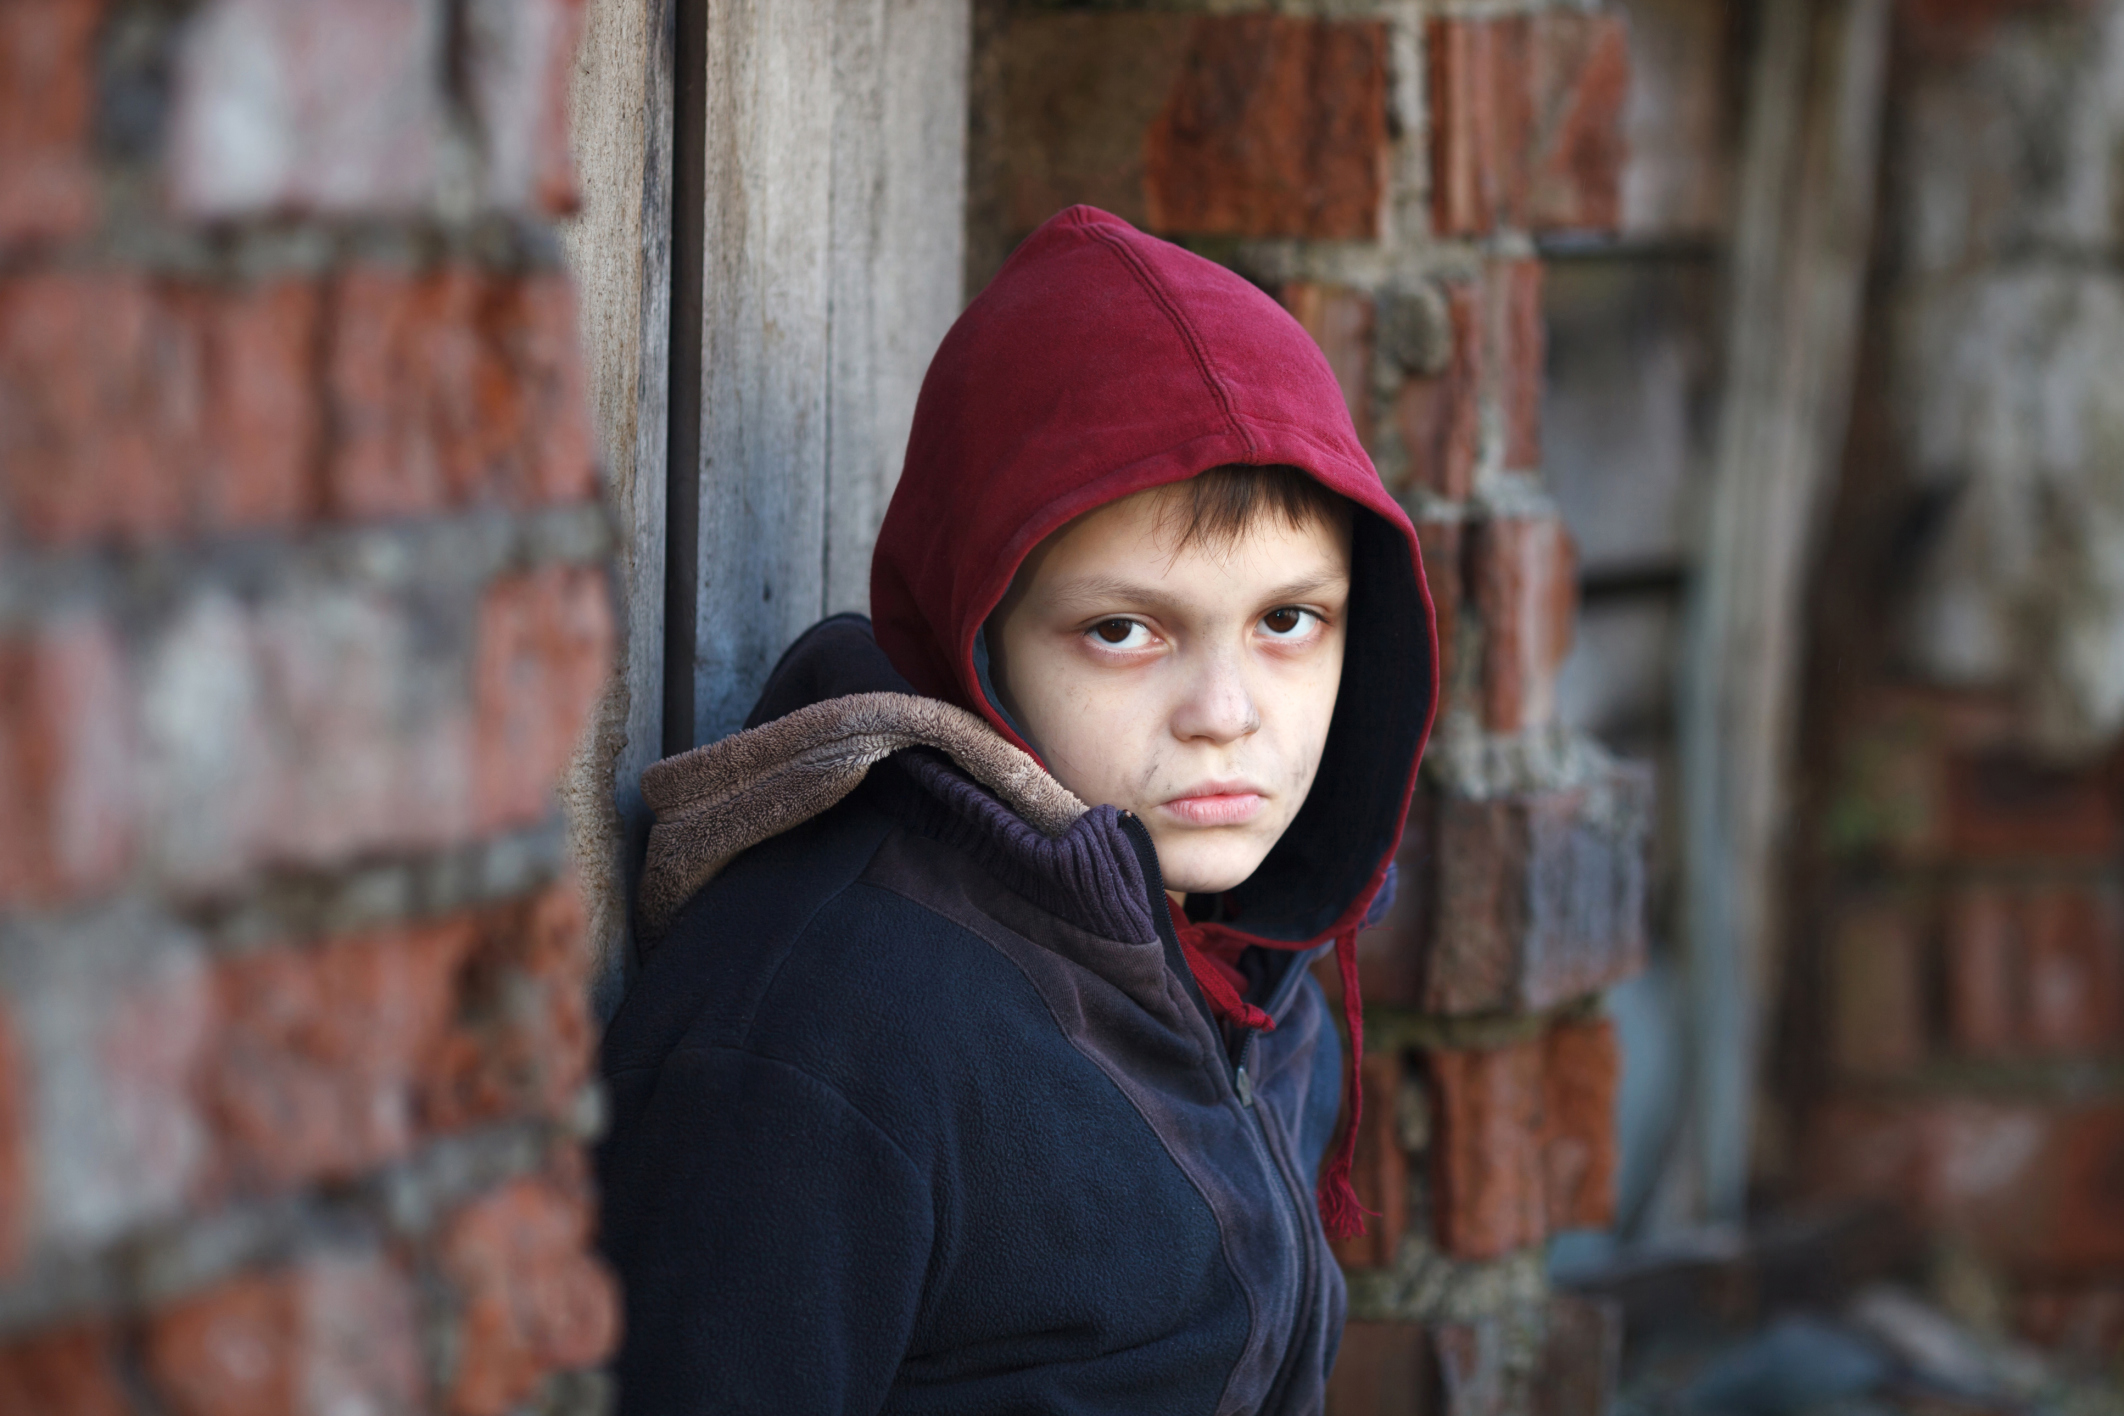 Nowhere To Go Over 88000 Children In London To Wake Up